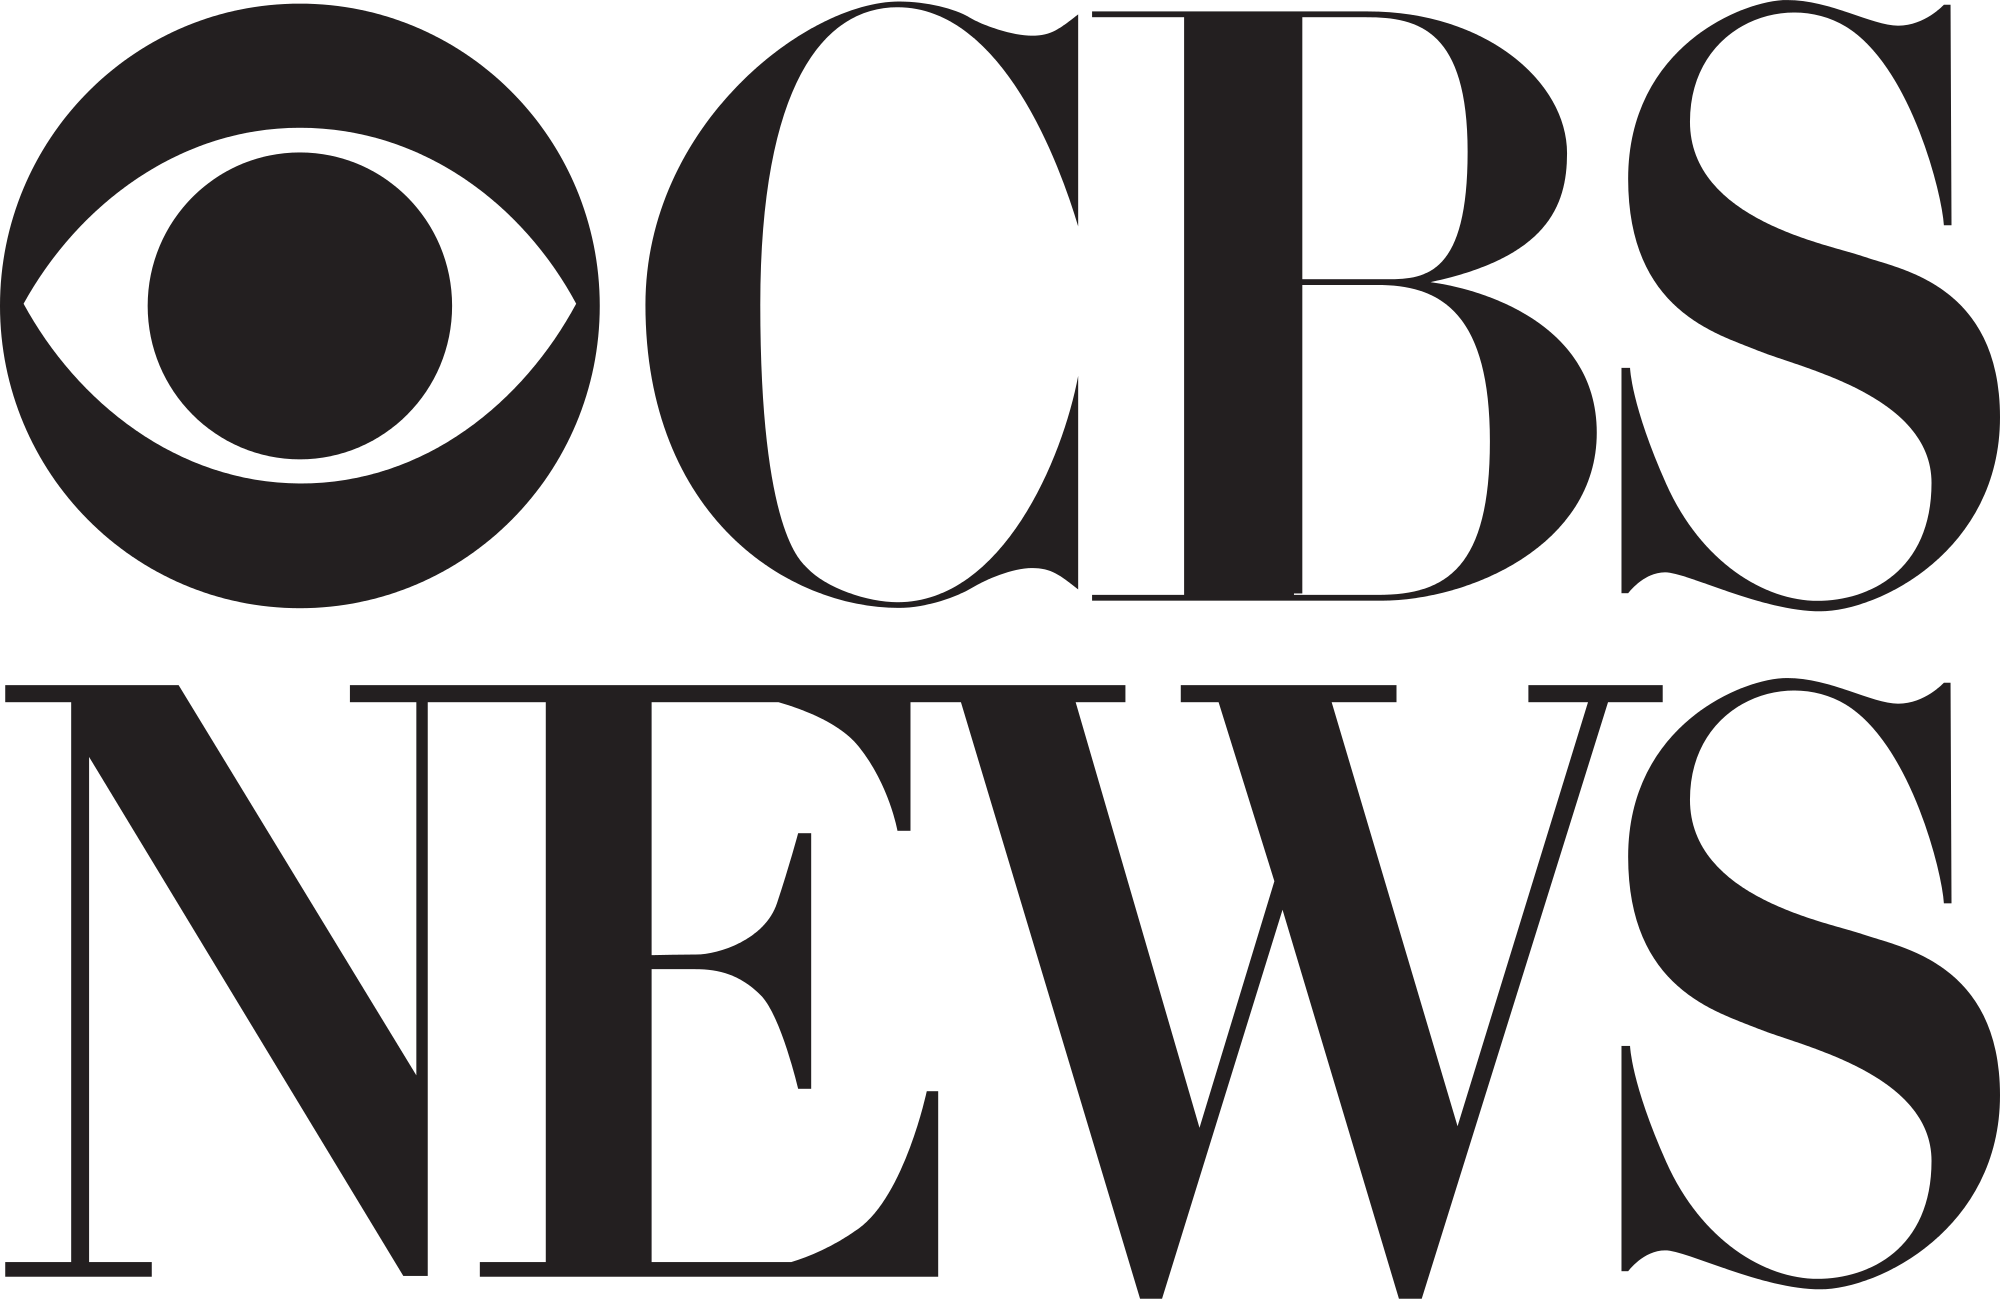 CBS Logo - File:CBS News.svg - Wikimedia Commons